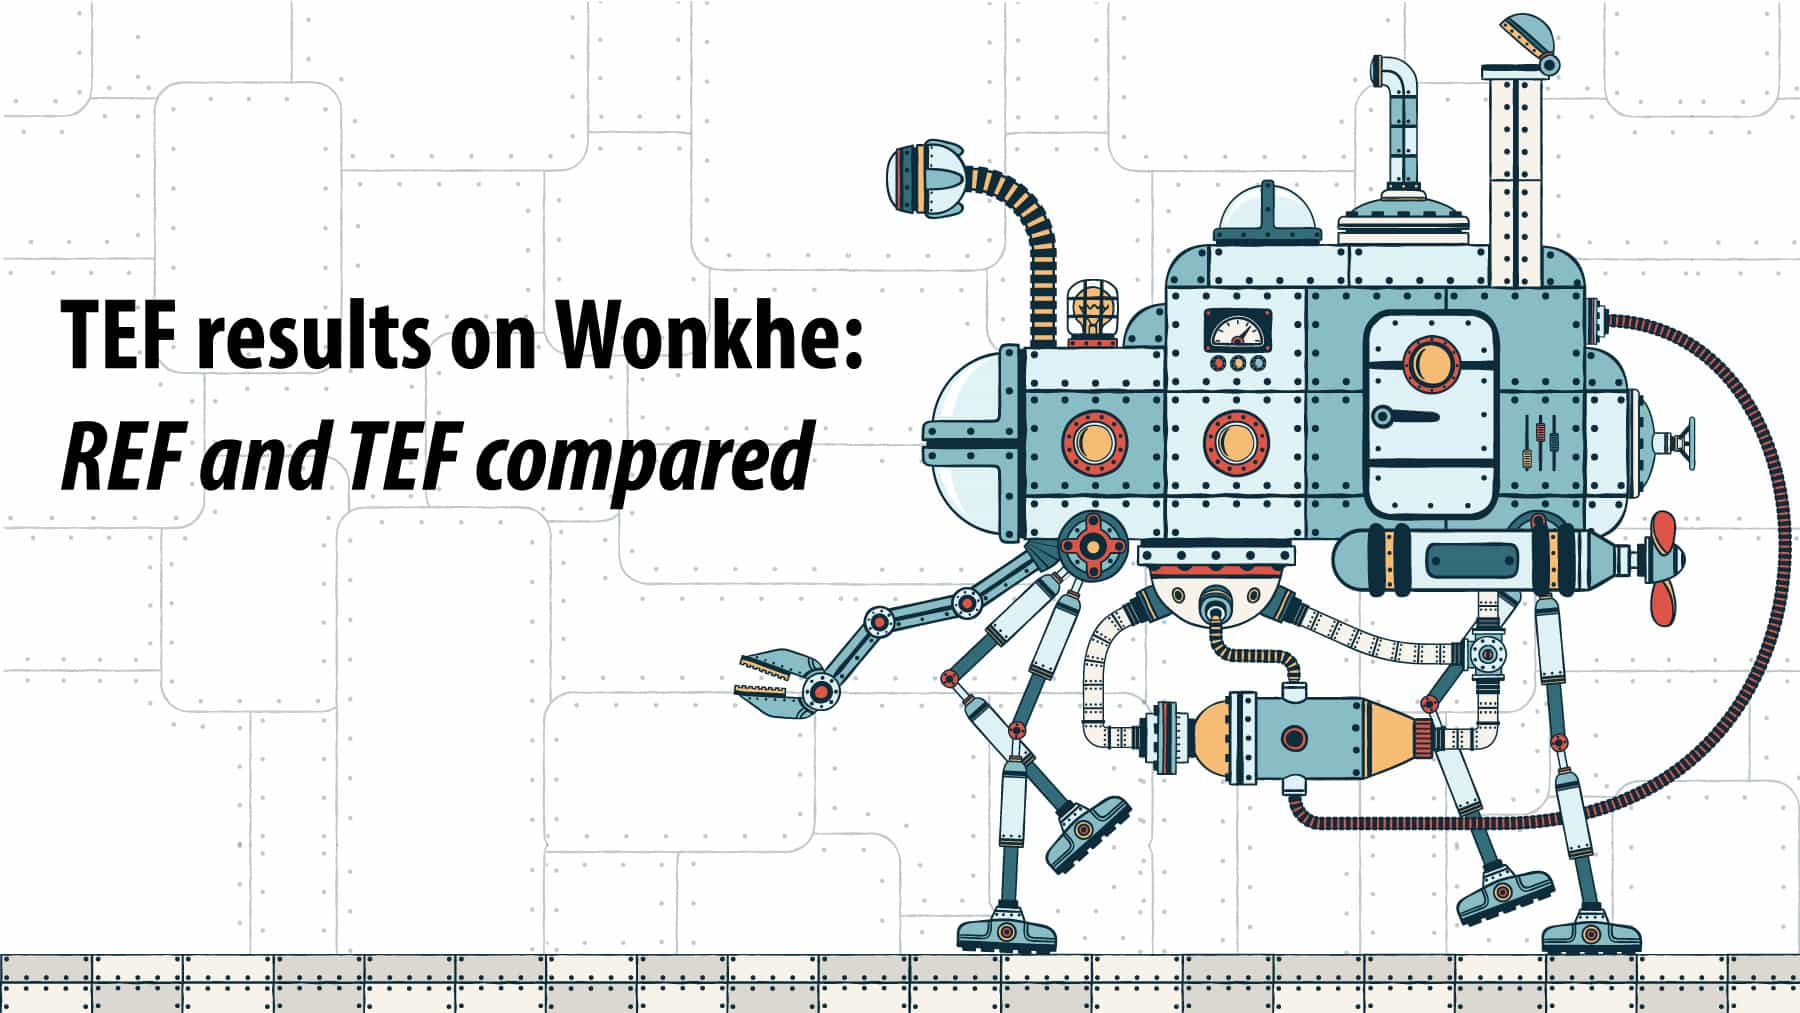 ref-tef-compared-wonkhe-results